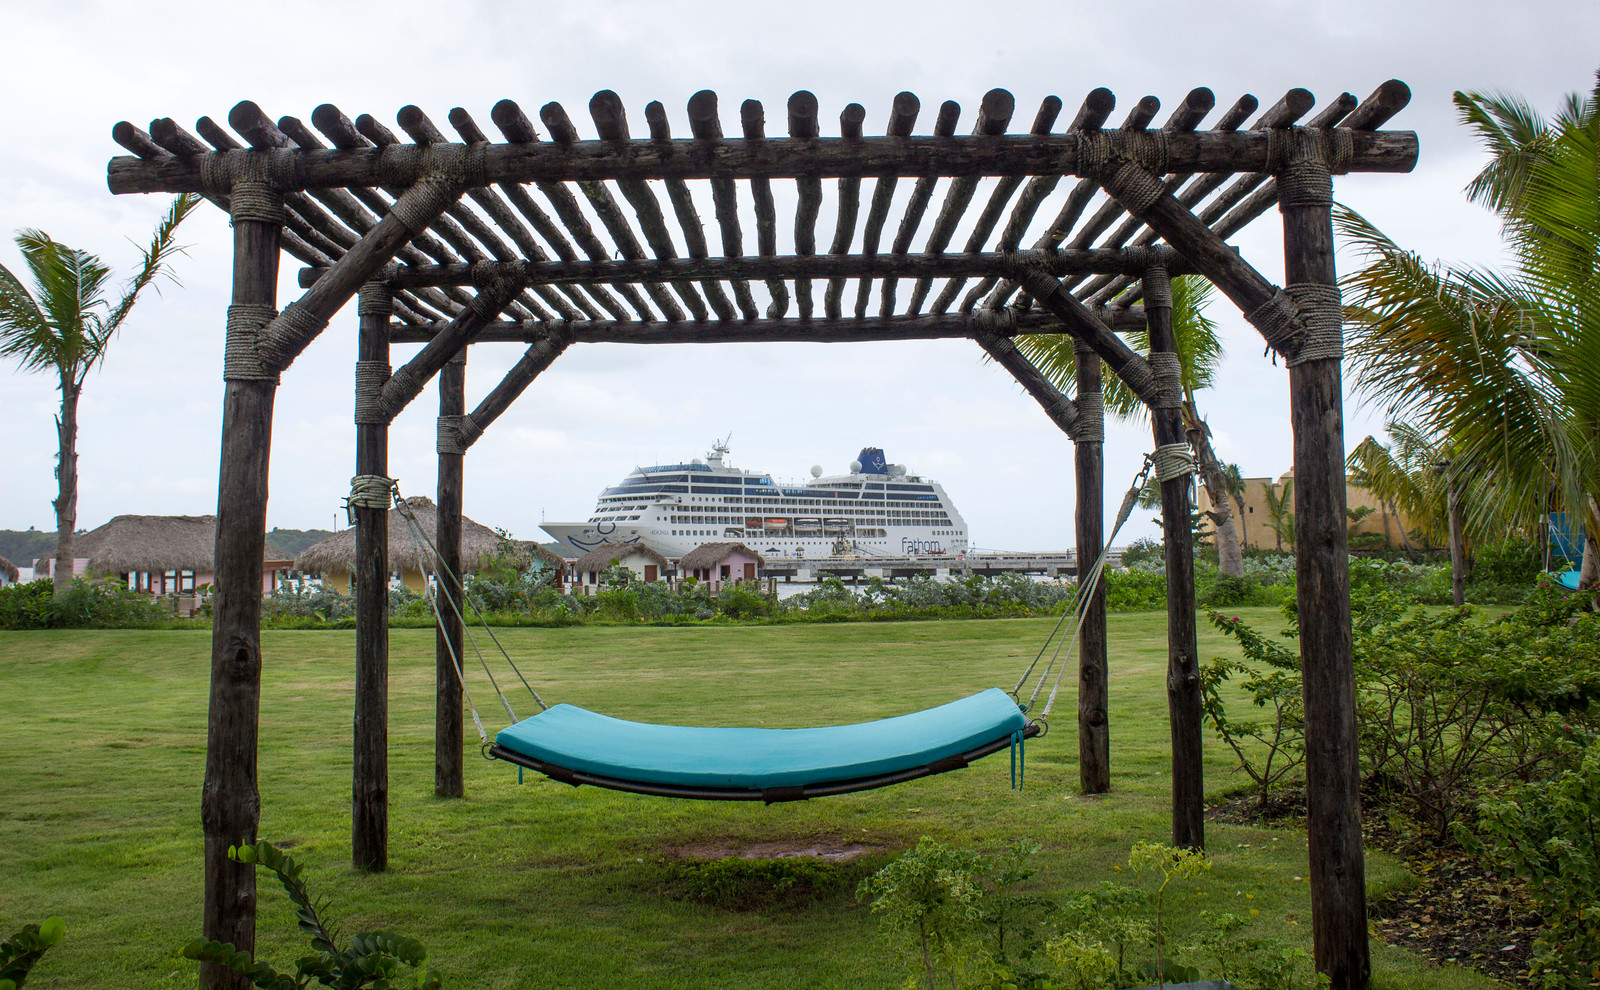 Amber Cove Dominican Republic Cruise Ship Port Guide - Hammocks to relax